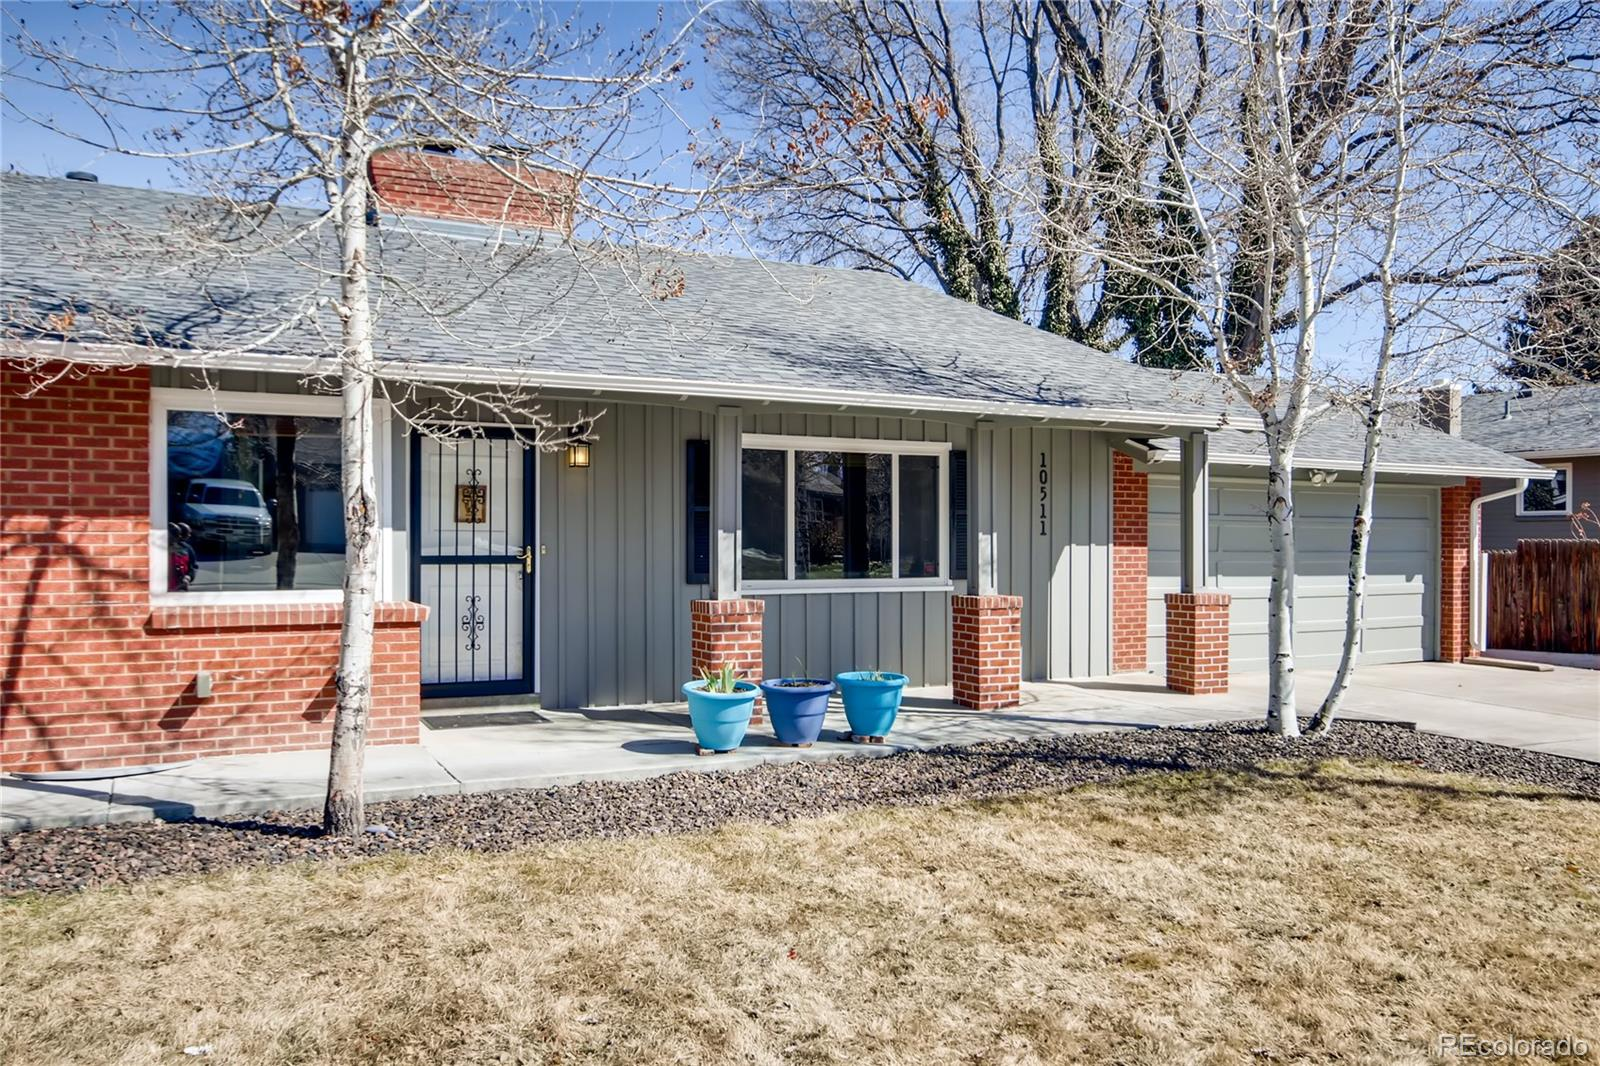 MLS# 9197299 - 4 - 10511 W 22nd Place, Lakewood, CO 80215